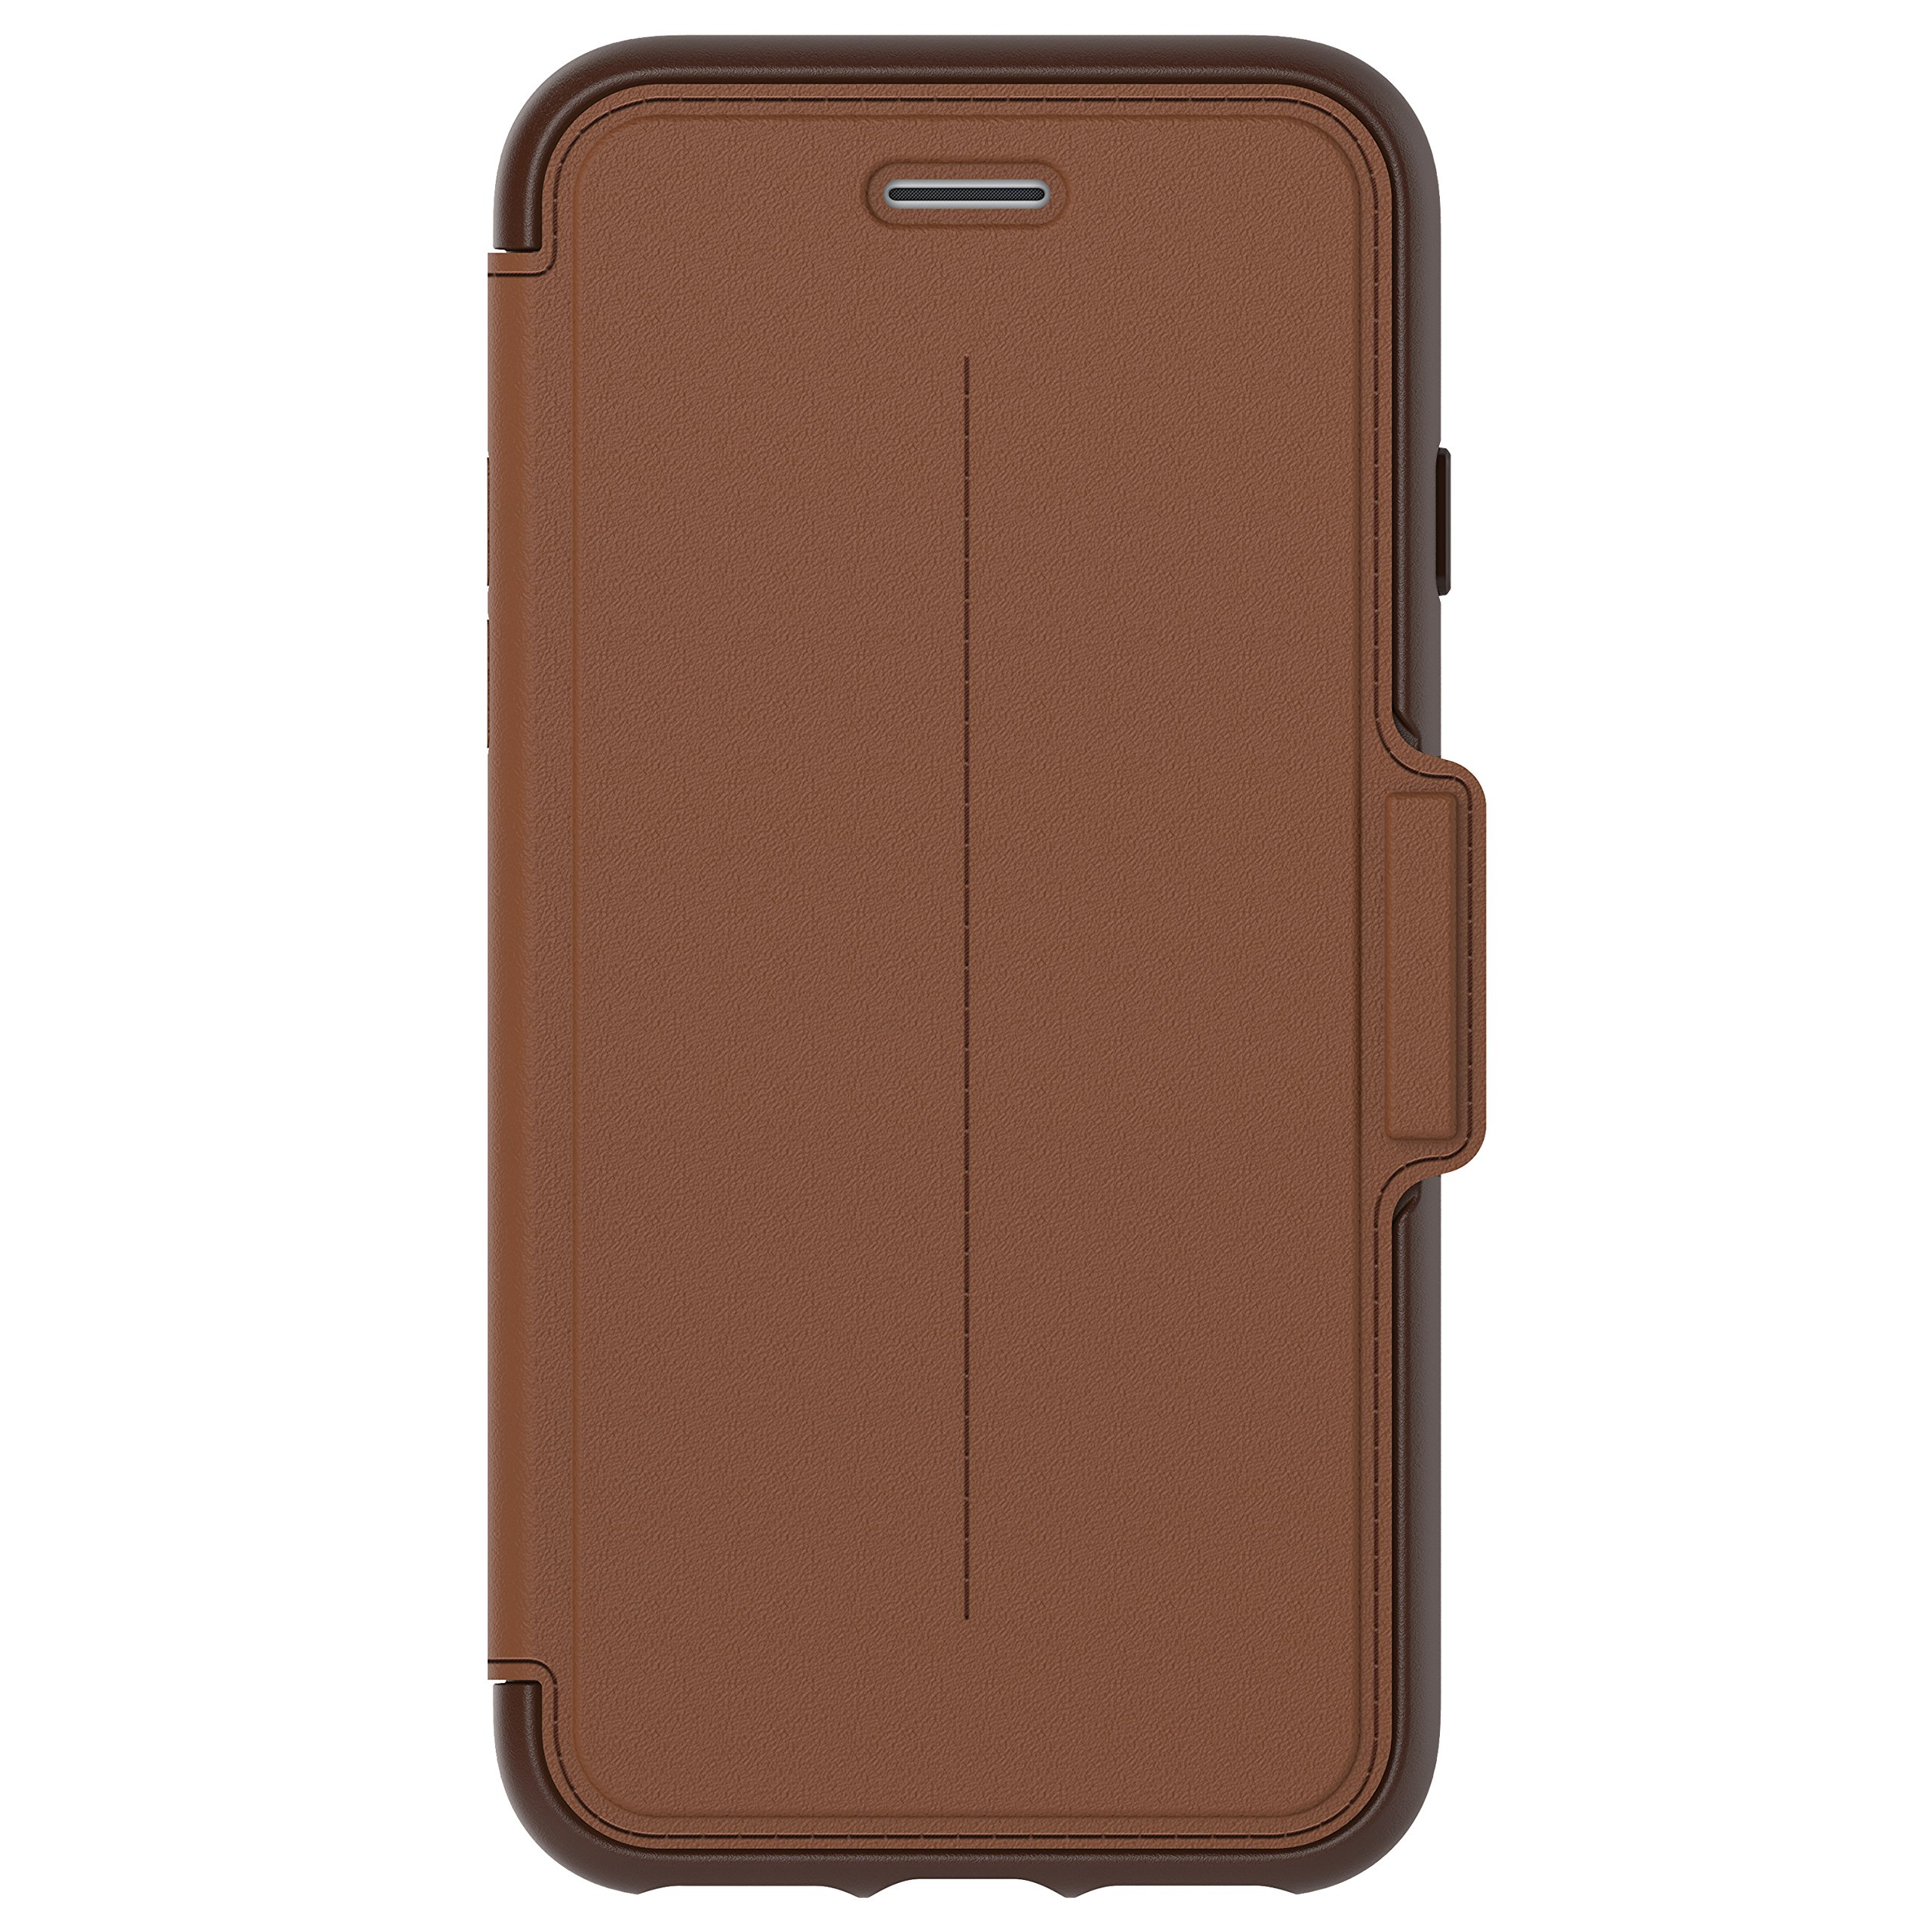 OtterBox 77-53973 STRADA SERIES Case for iPhone 8 & iPhone 7 (NOT Plus) - BURNT SADDLE (BURNT SADDLE/CHAPSHAIR LEATHER)